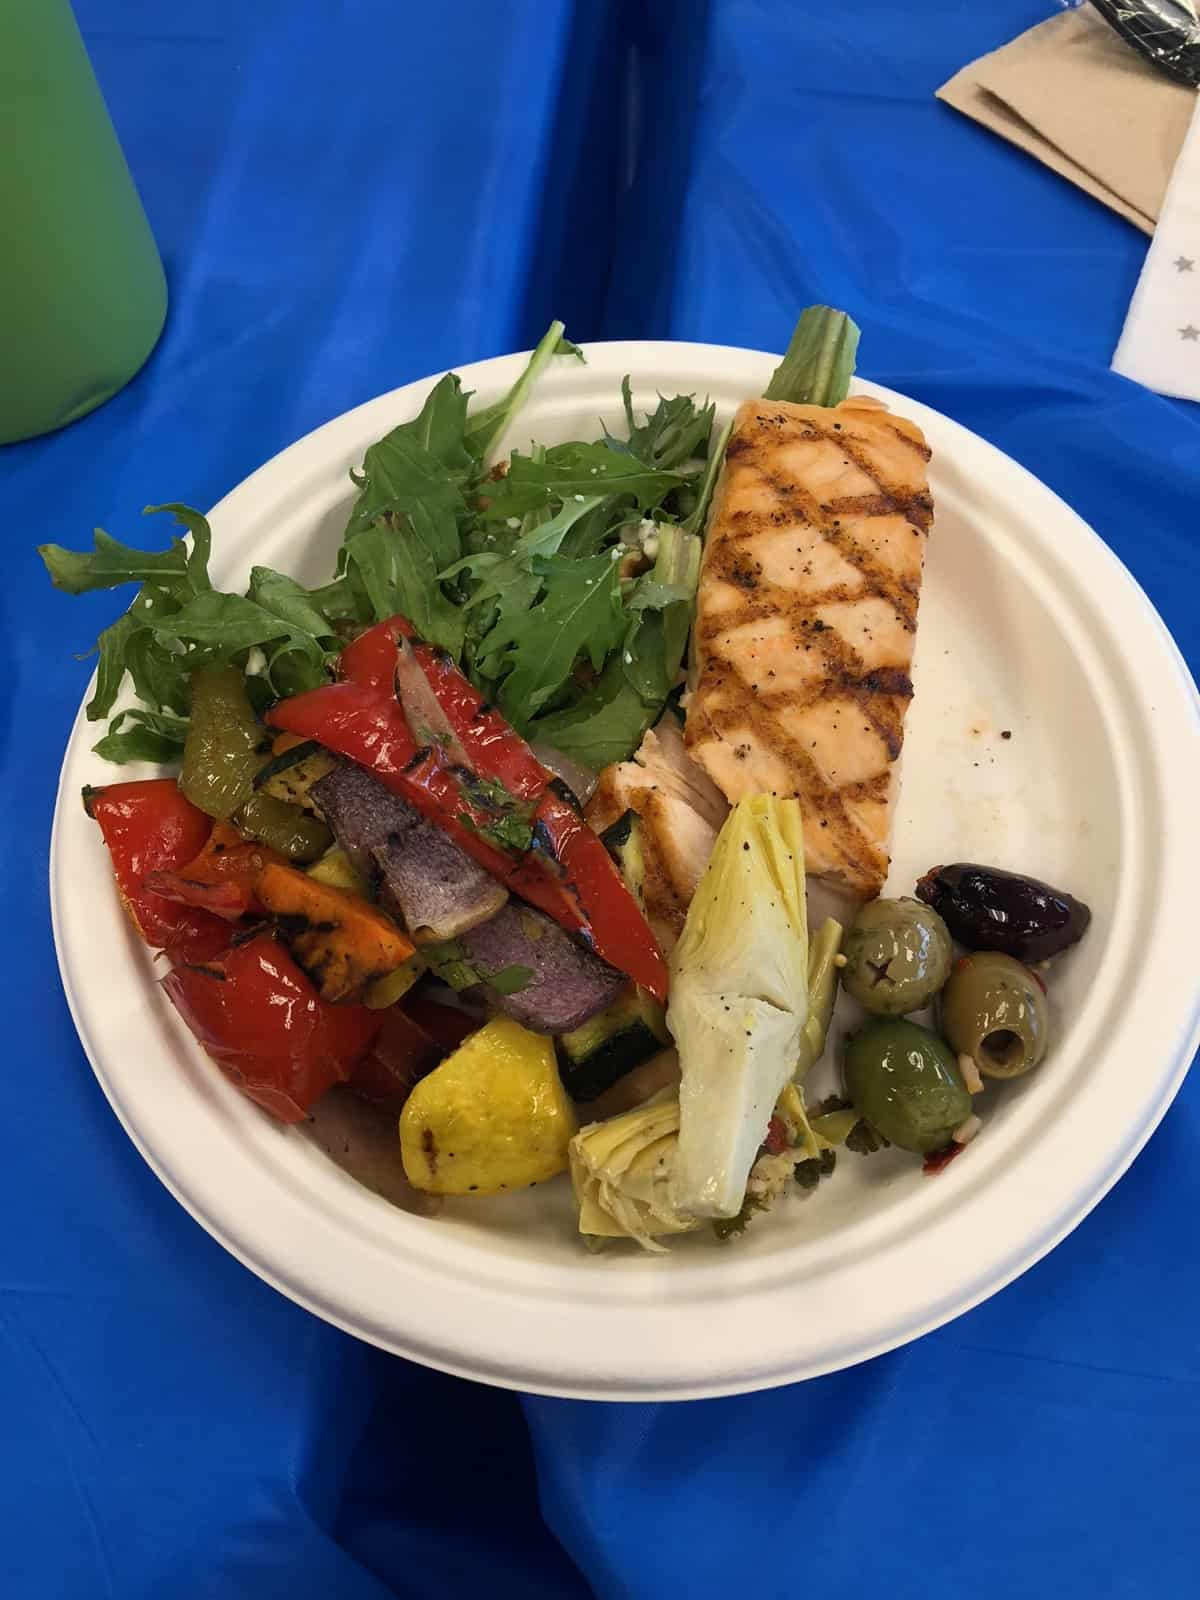 Catered lunch of salad, roasted veggies, salmon, and olives